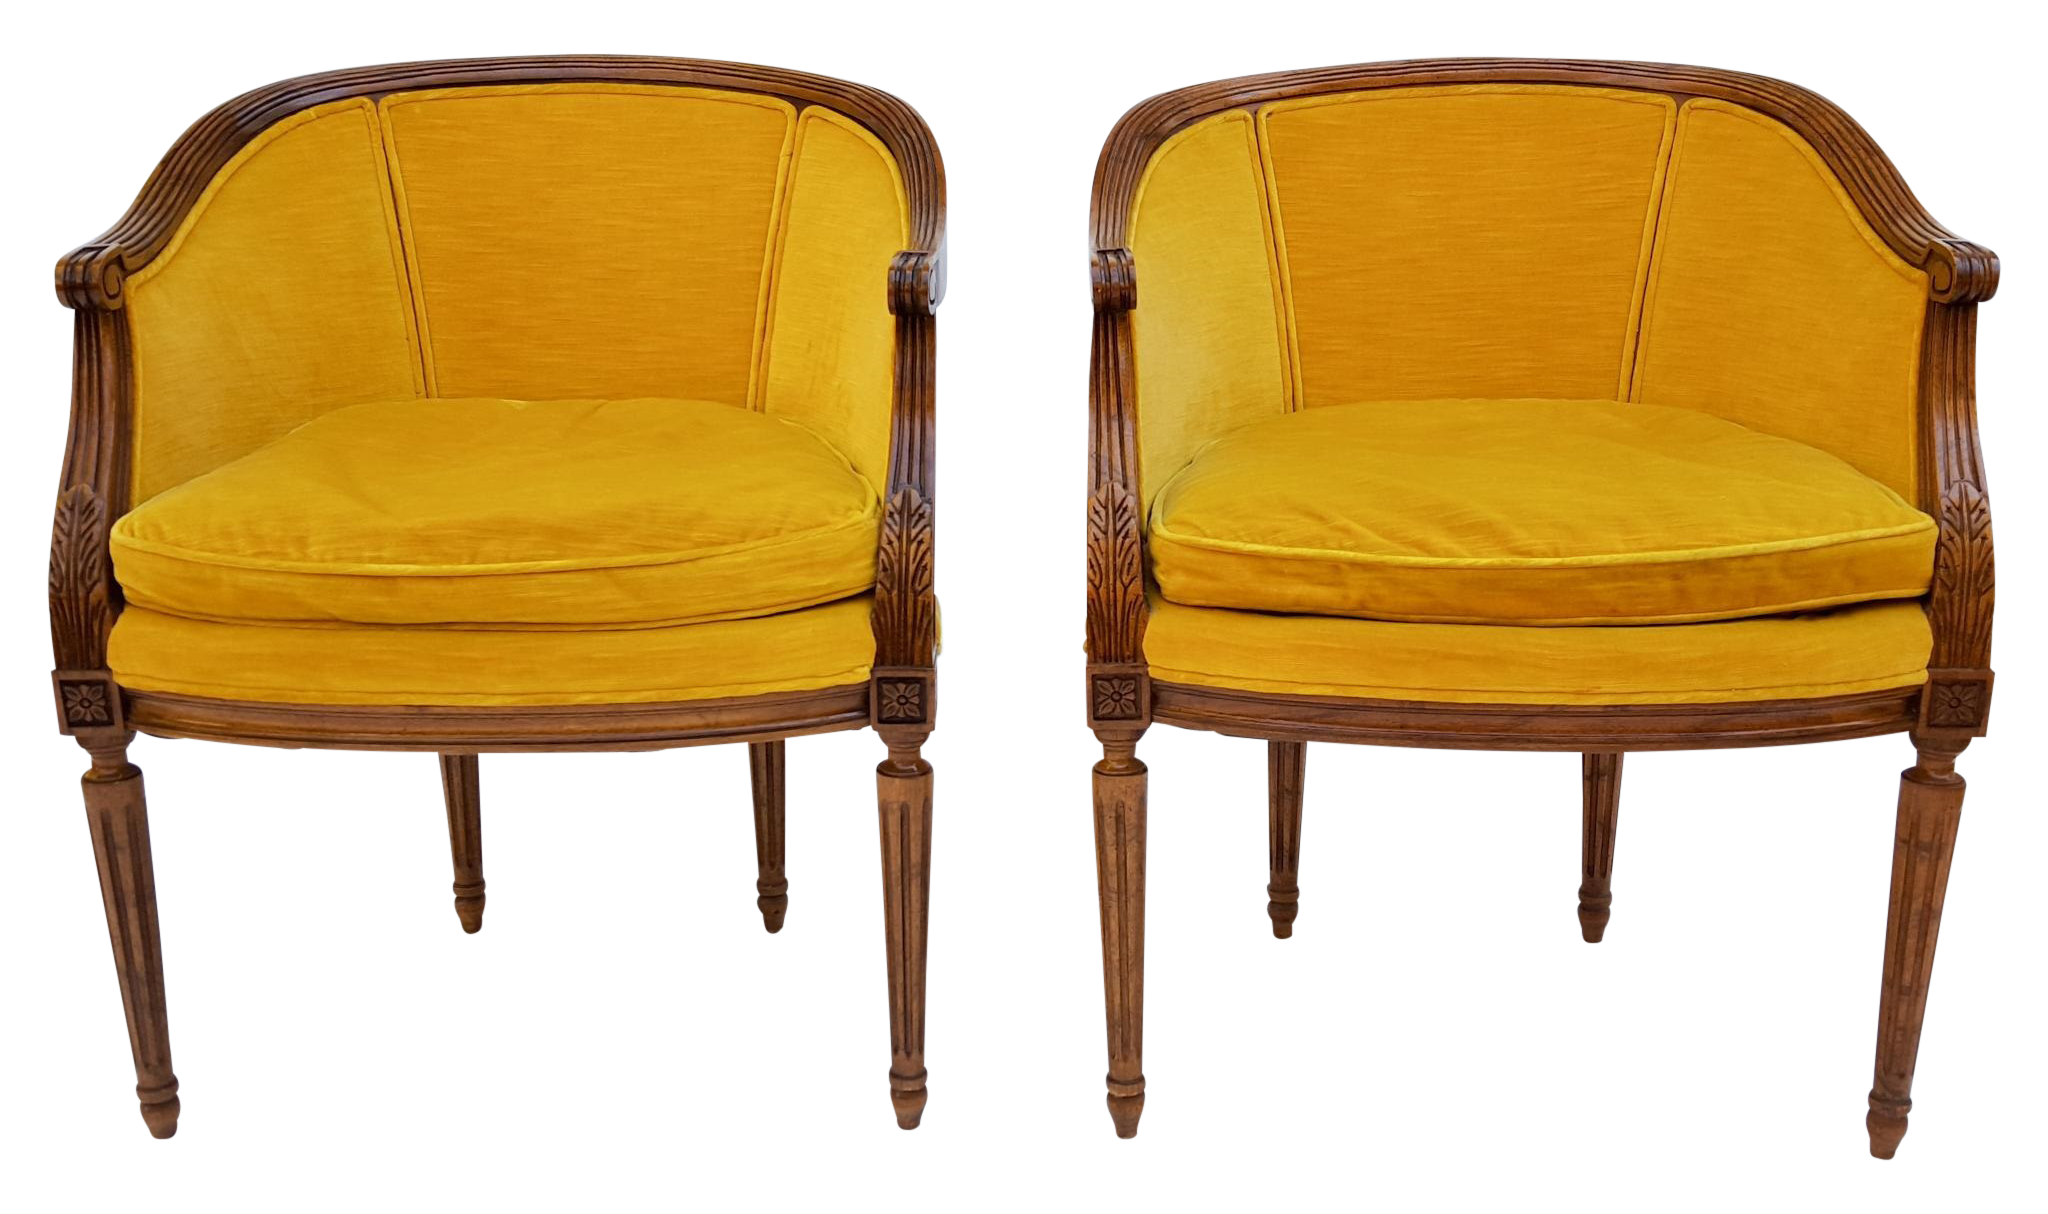 Lovely pair of vintage drexel heritage chairs circa 60s wood frames with beautiful detailing gold velvet upholstery in a classic french style